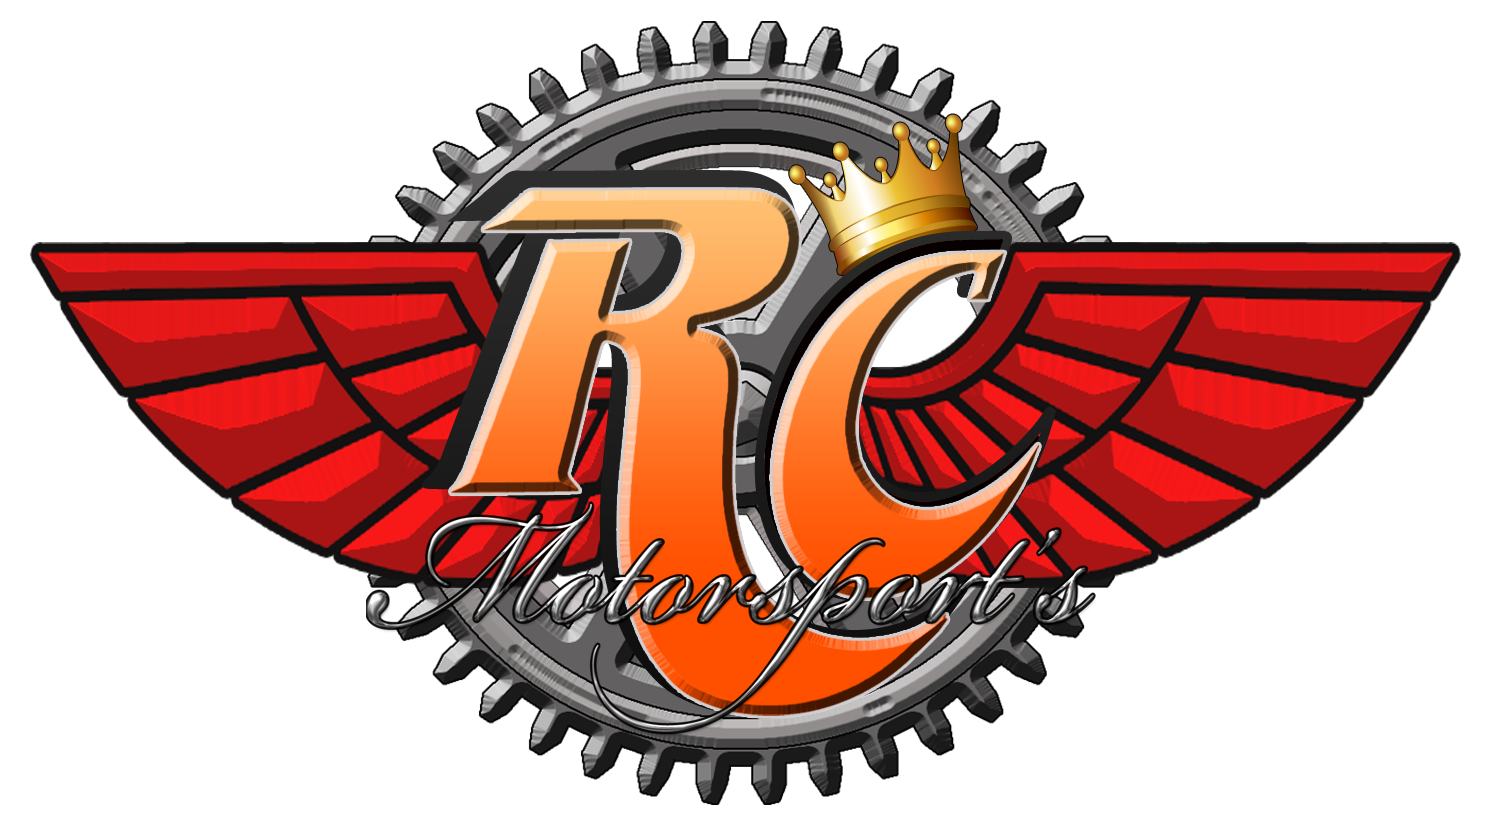 Royal Custom Motorsports